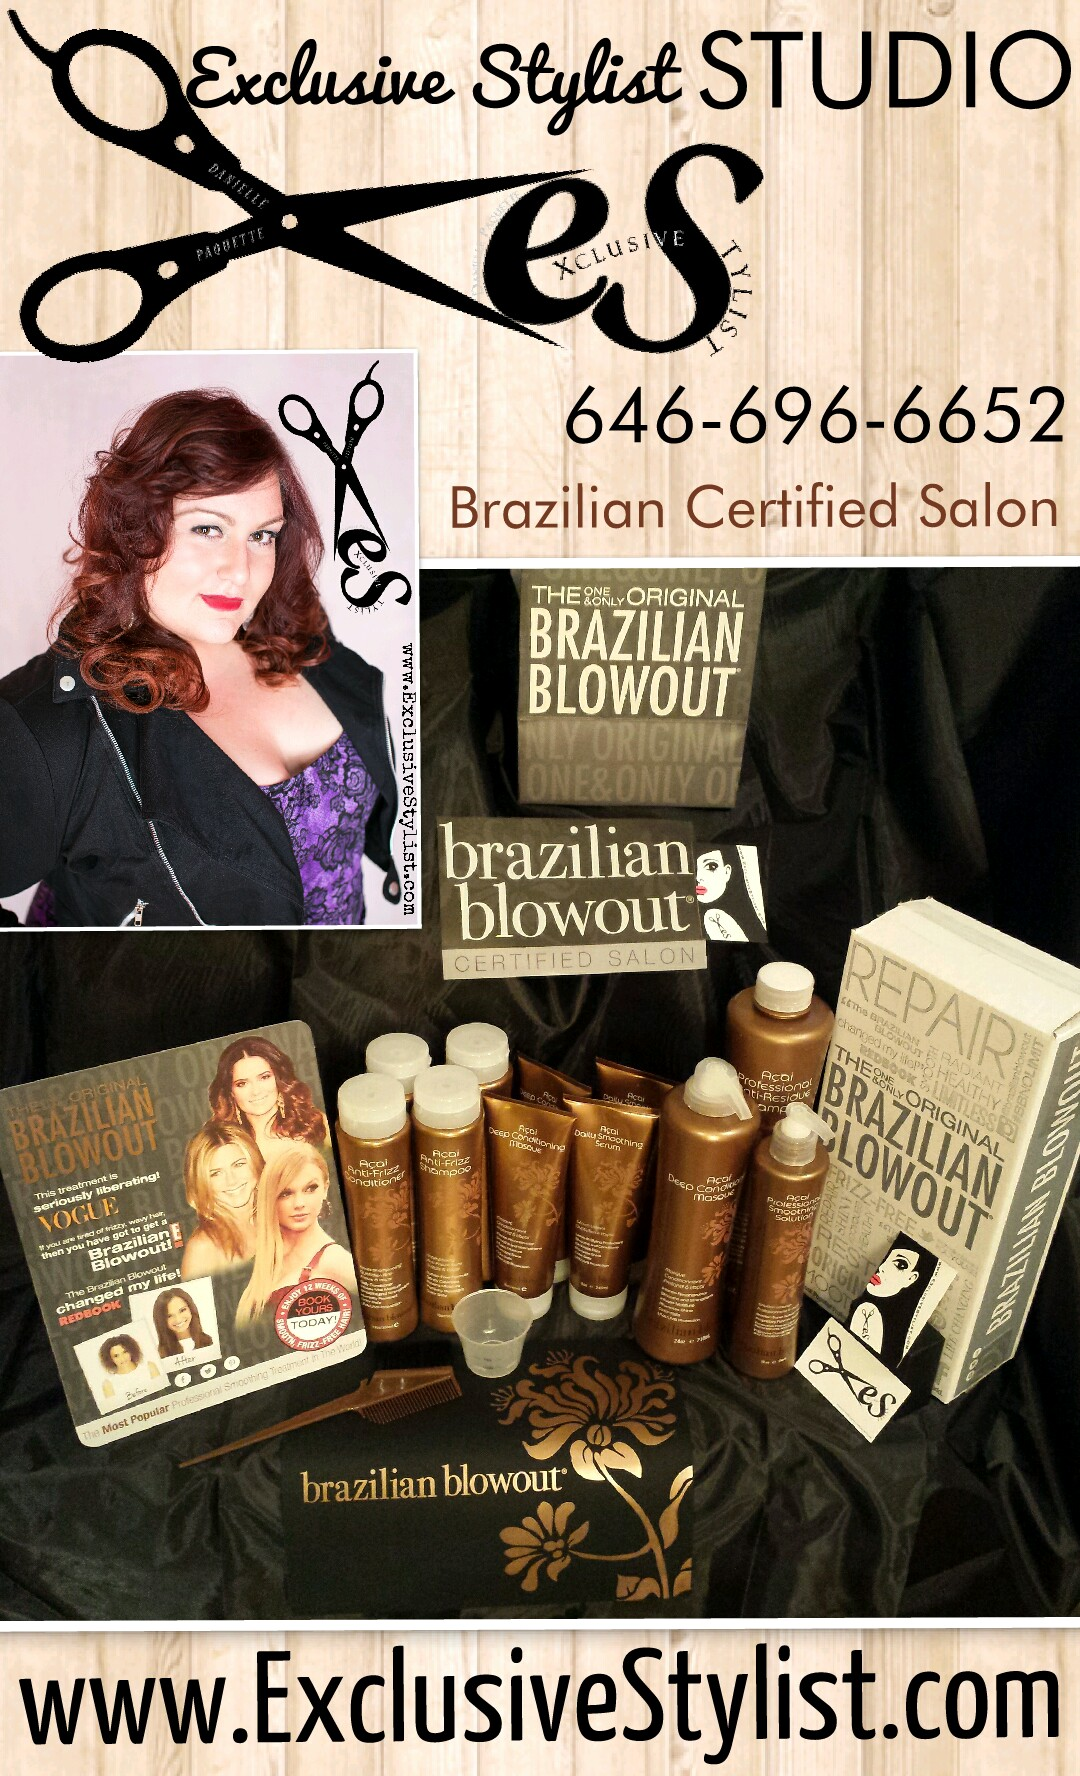 My Brides Love Brazilian Blowout!